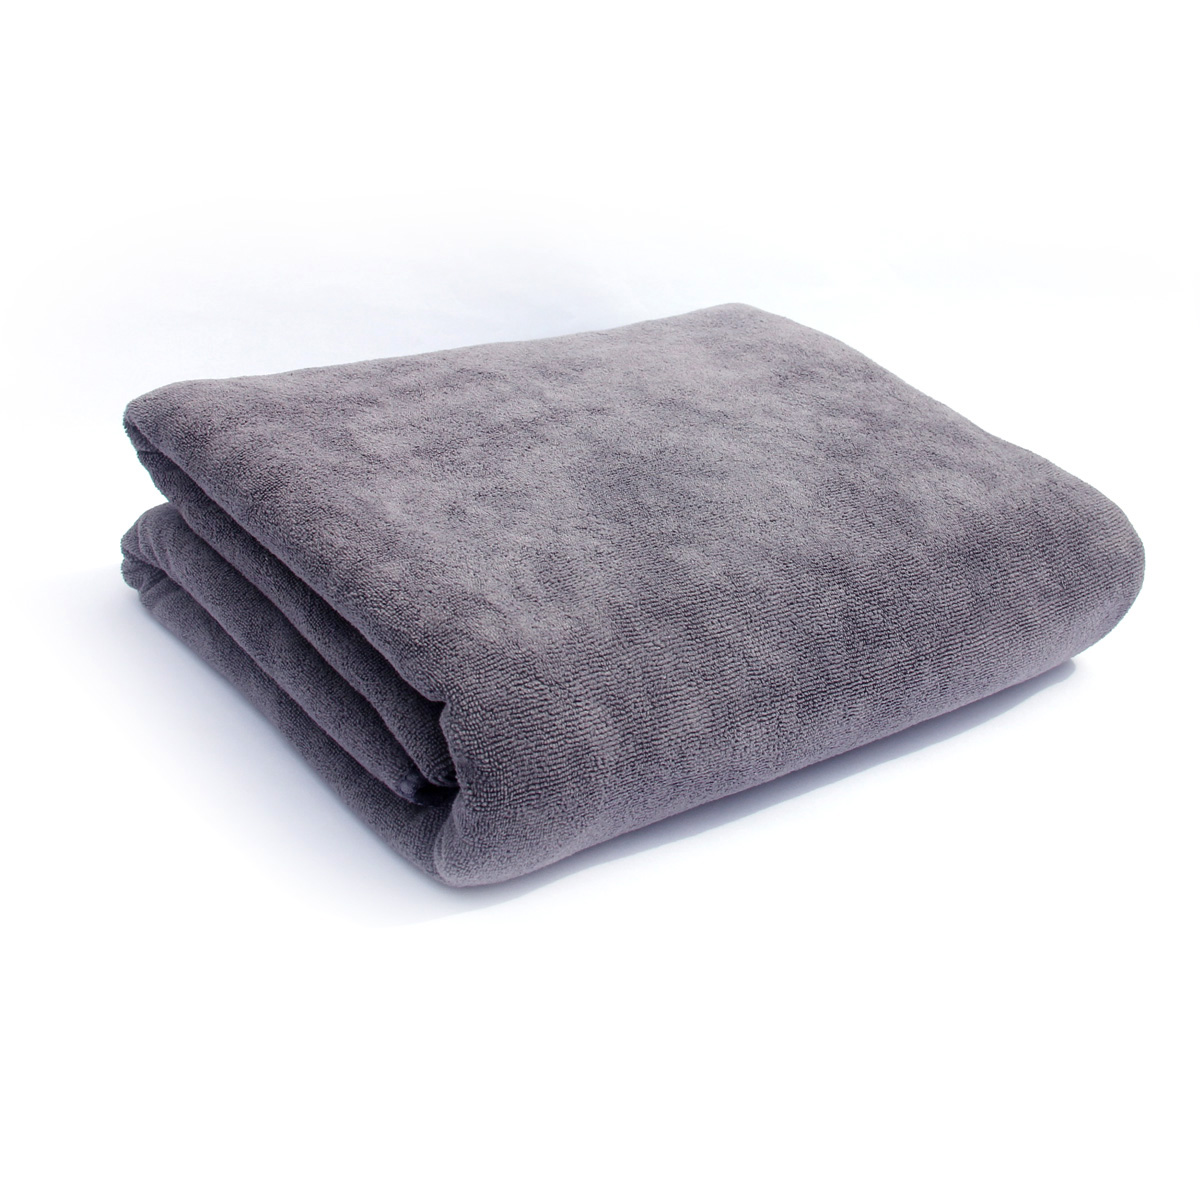 Bath Towels Multi-Purpose Microfiber (32 x 71 Inch) Soft Fast Drying Travel Gym Home Hotel Office Washcloths (Grey)